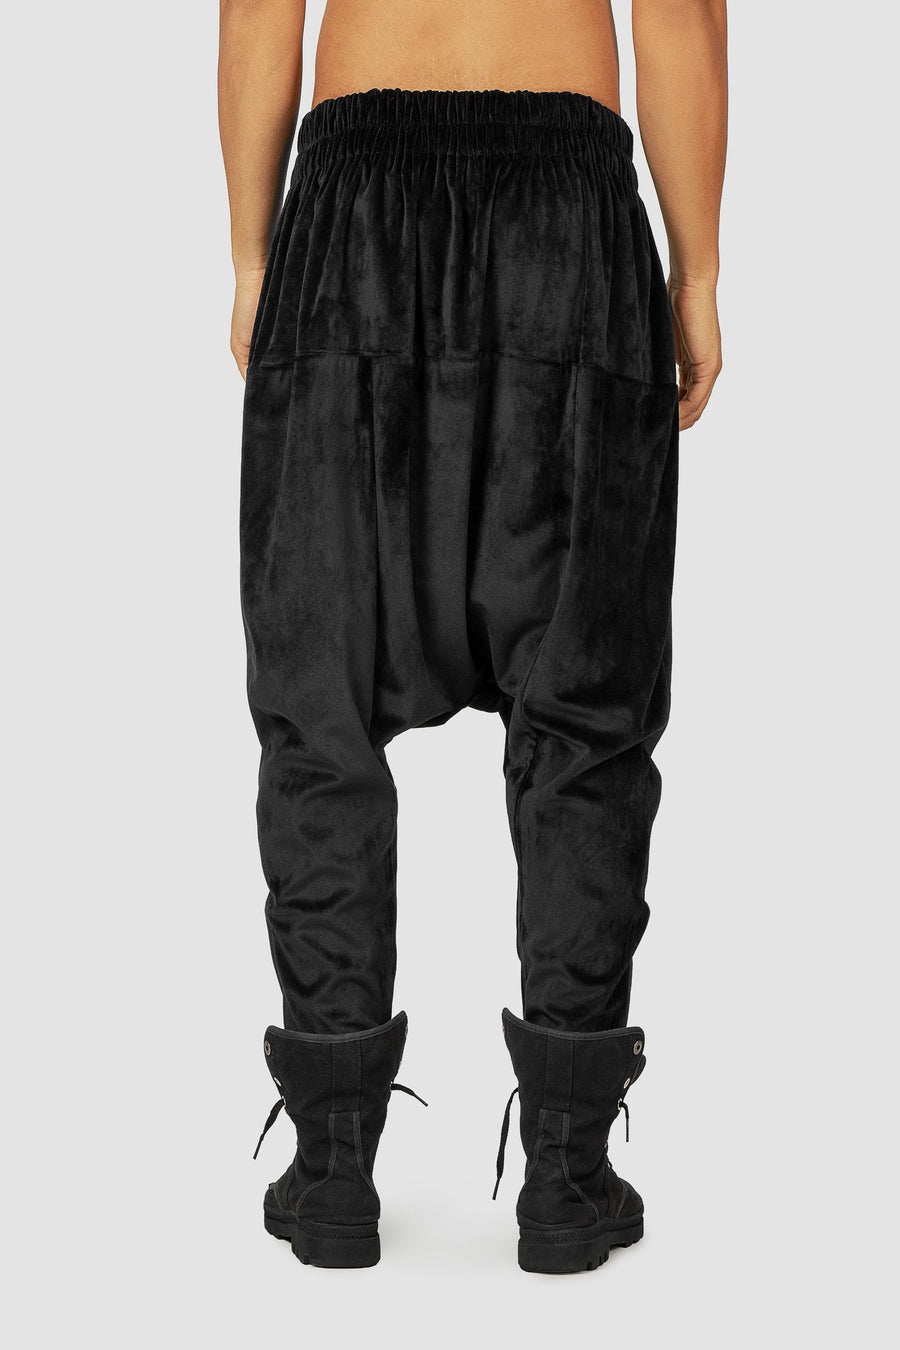 Black Crow Harem Pants